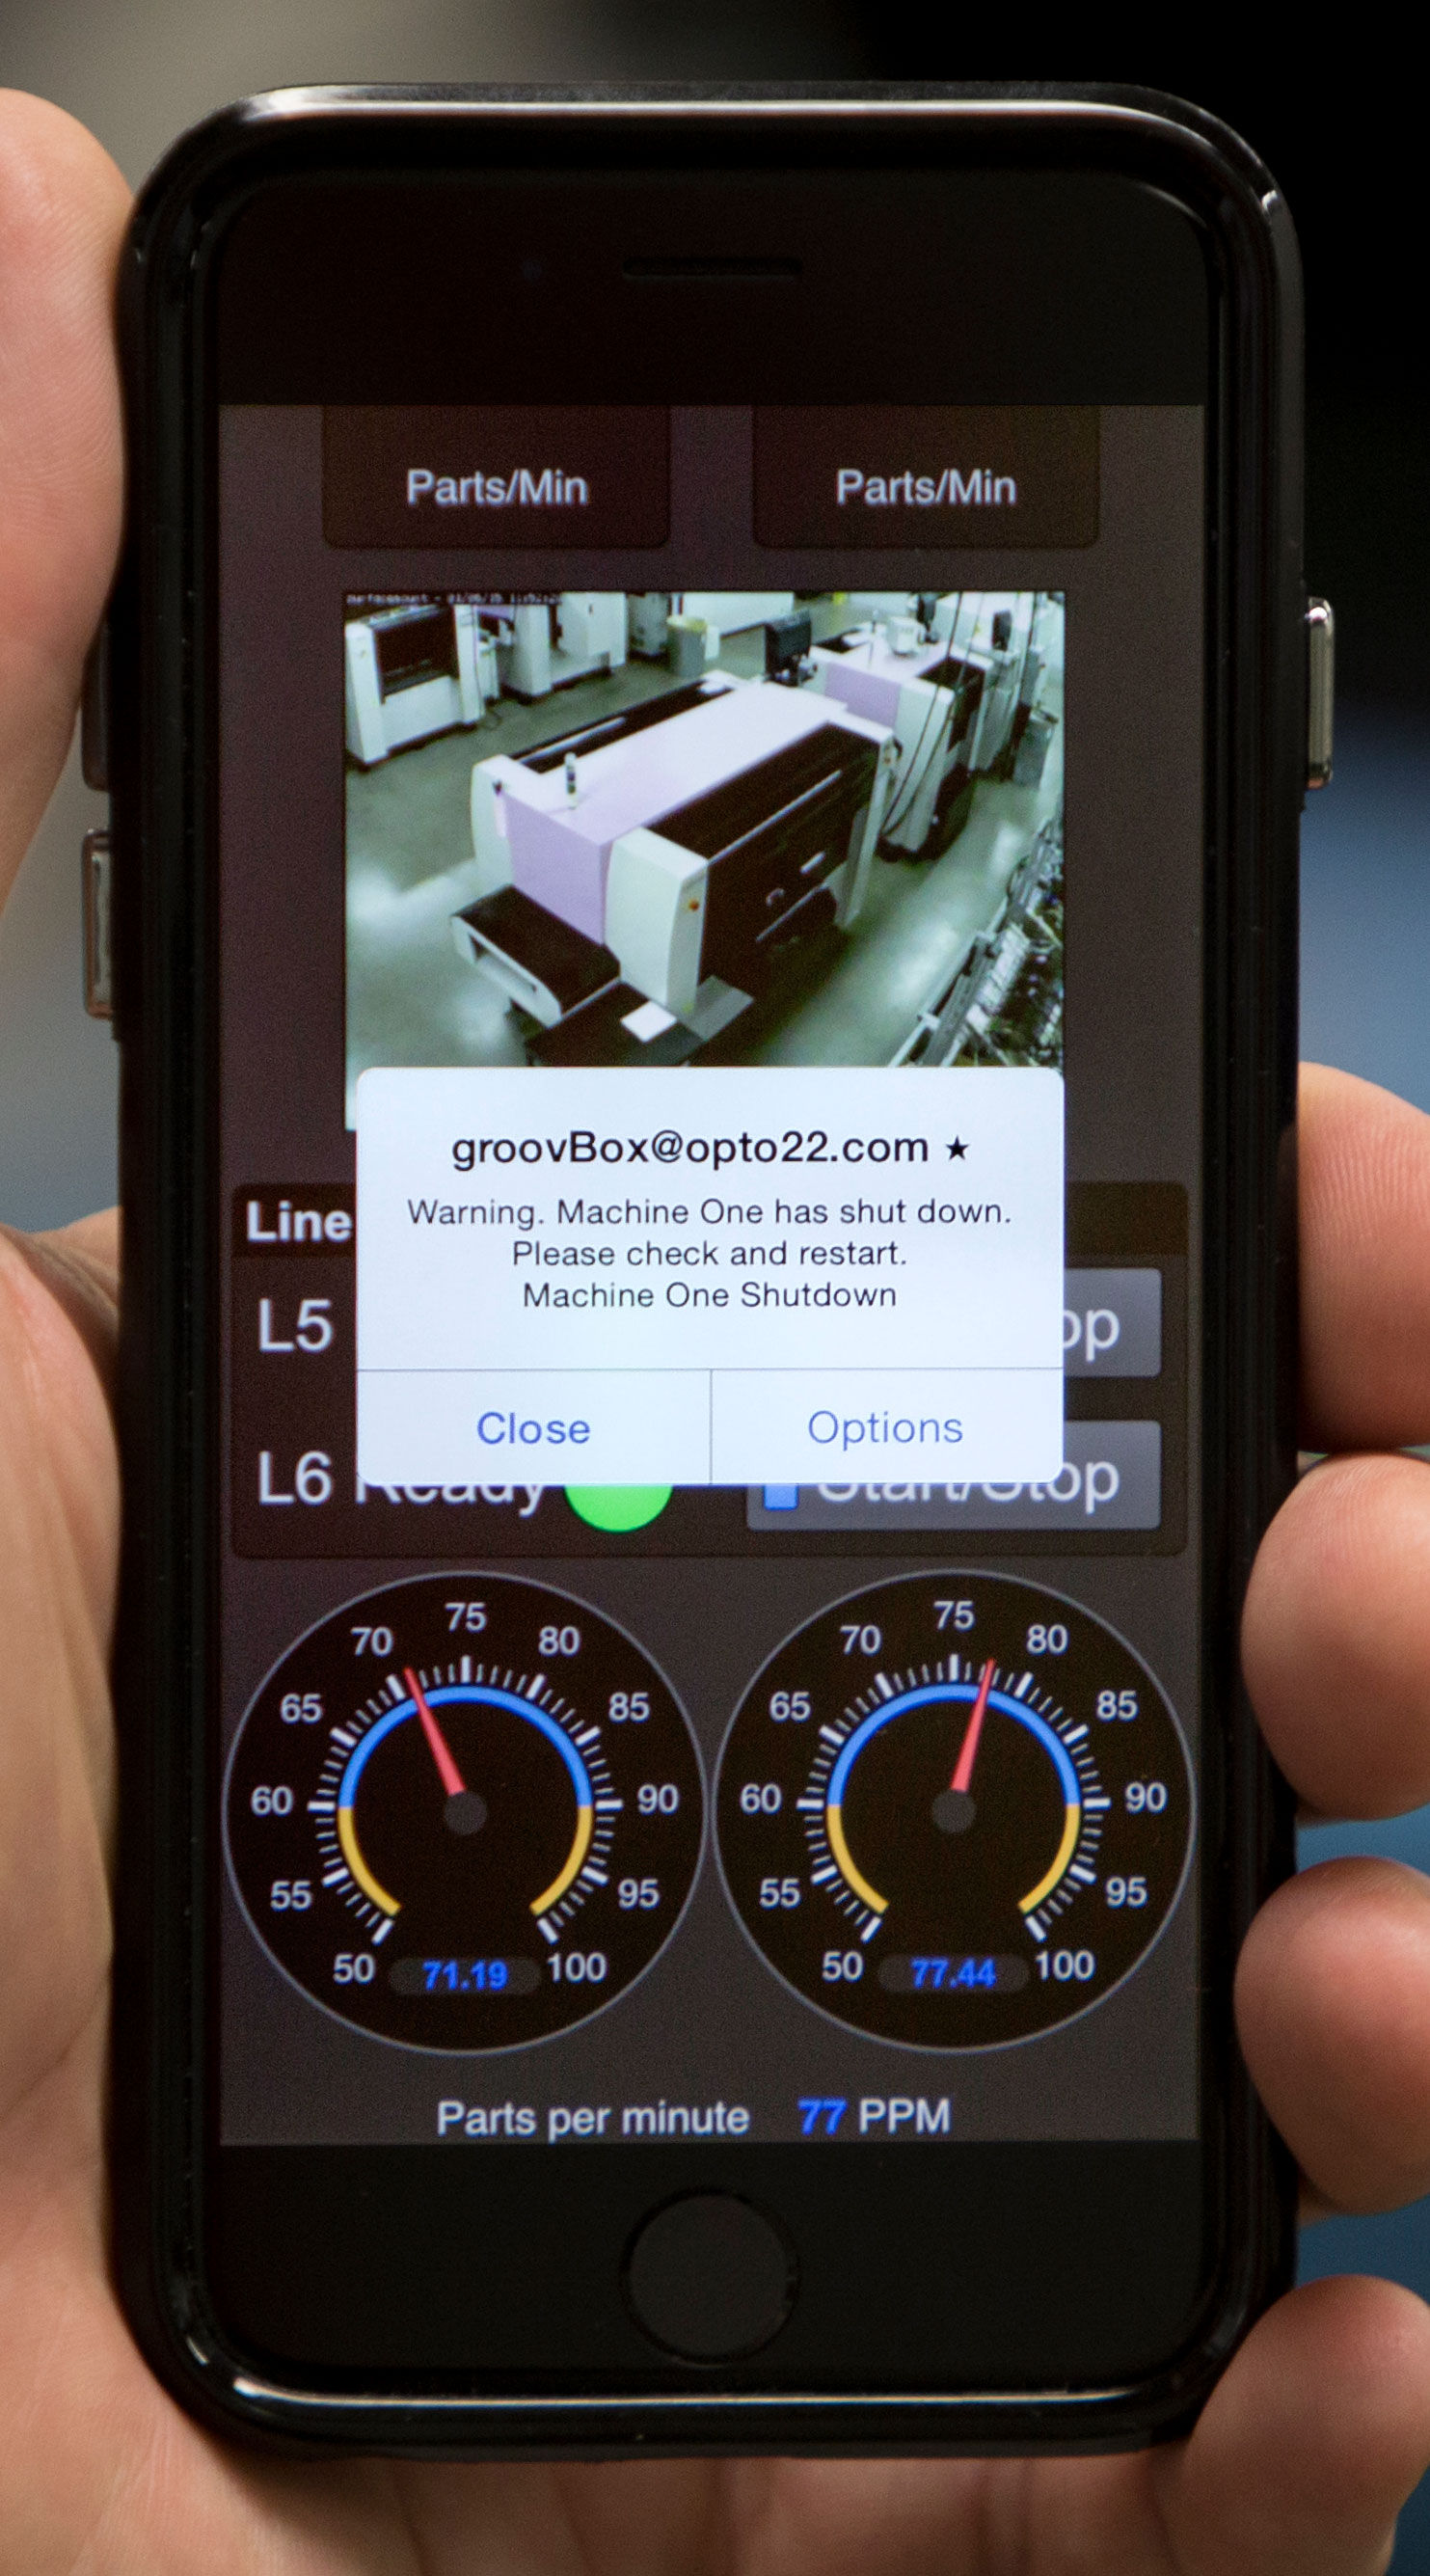 groov enables real time OEE through mobile devices